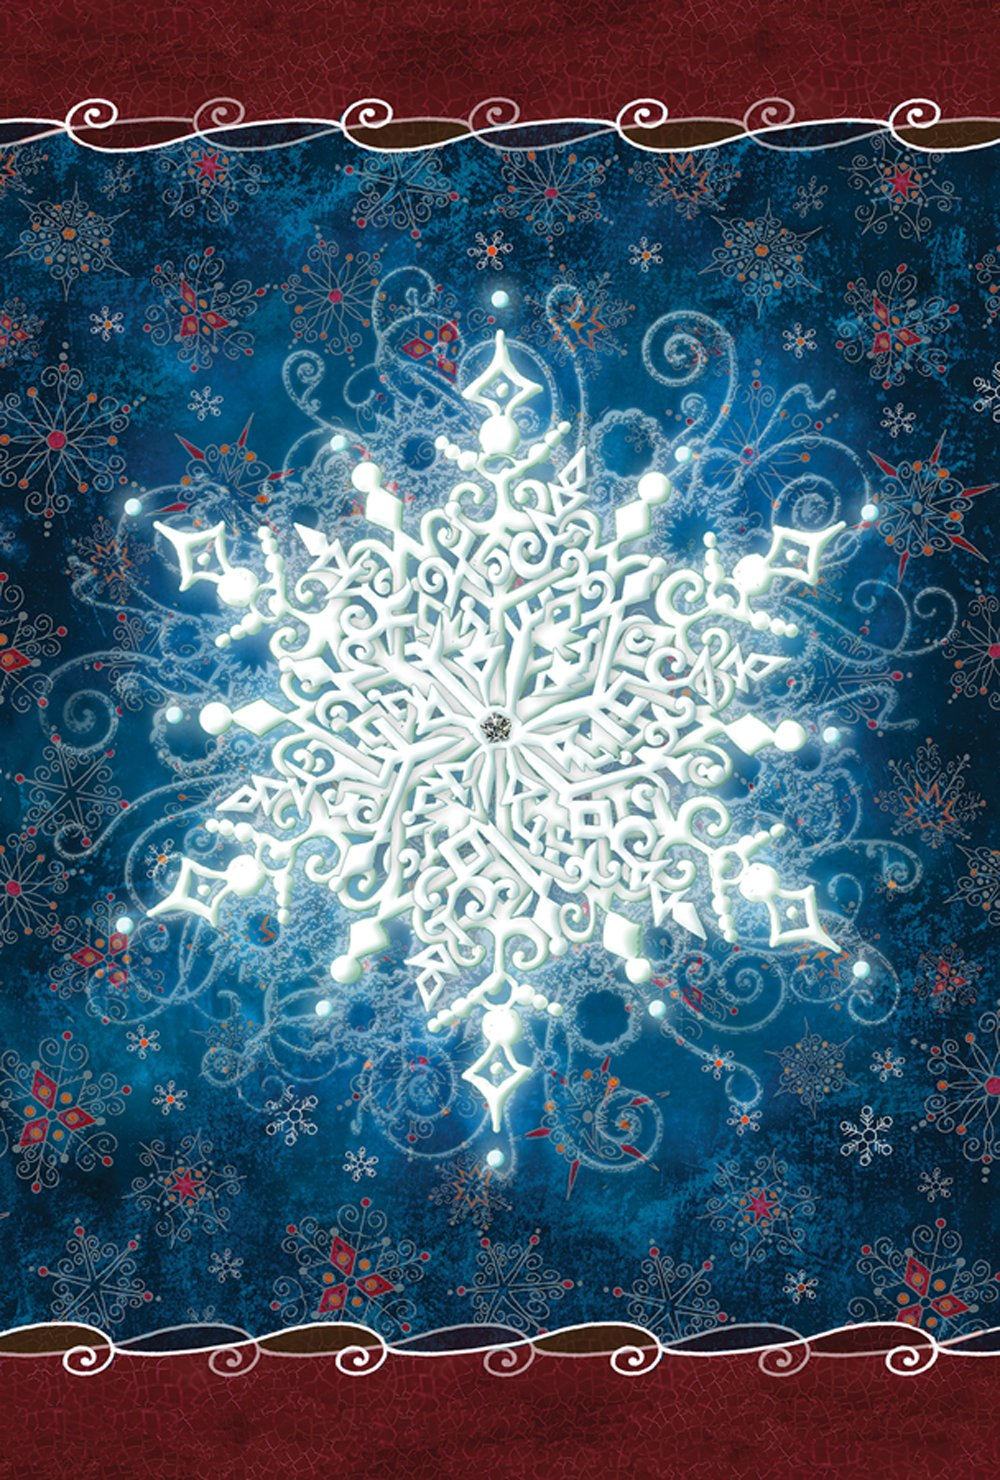 Toland Home Garden Solo Snowflake 28 x 40 Inch Decorative Winter Design House Flag (1010546)